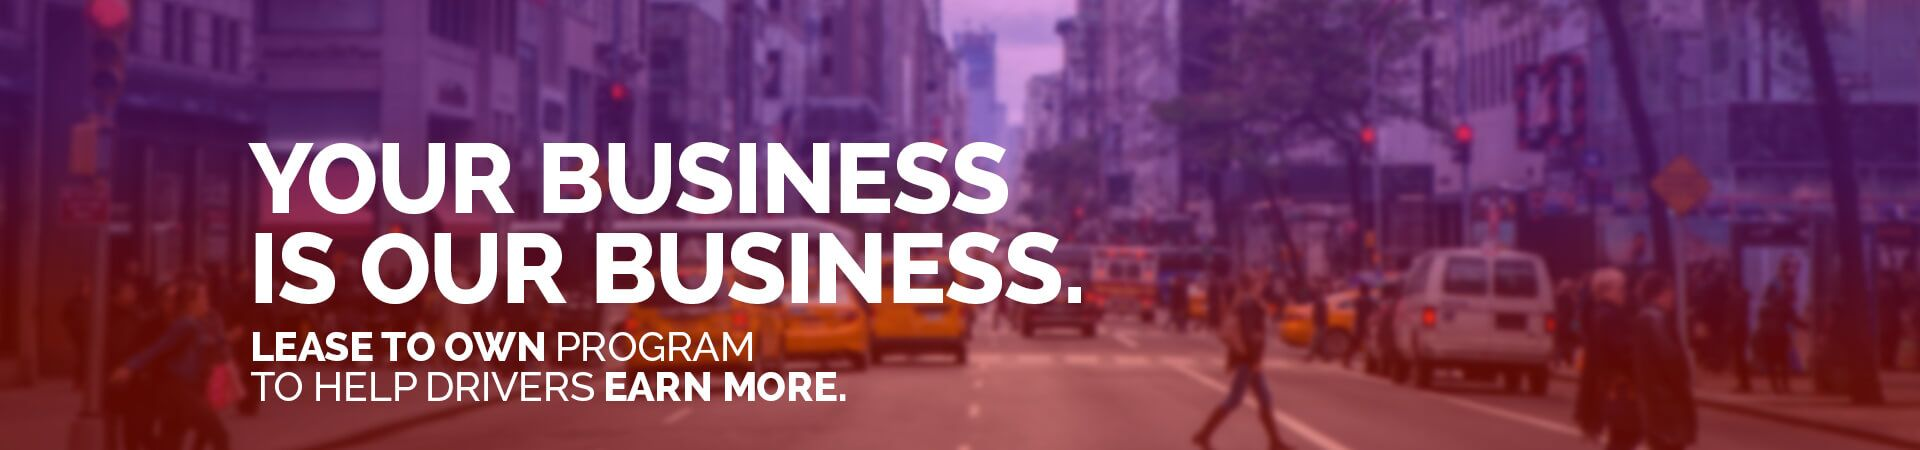 Your Business is Our Business New York Livery Leasing